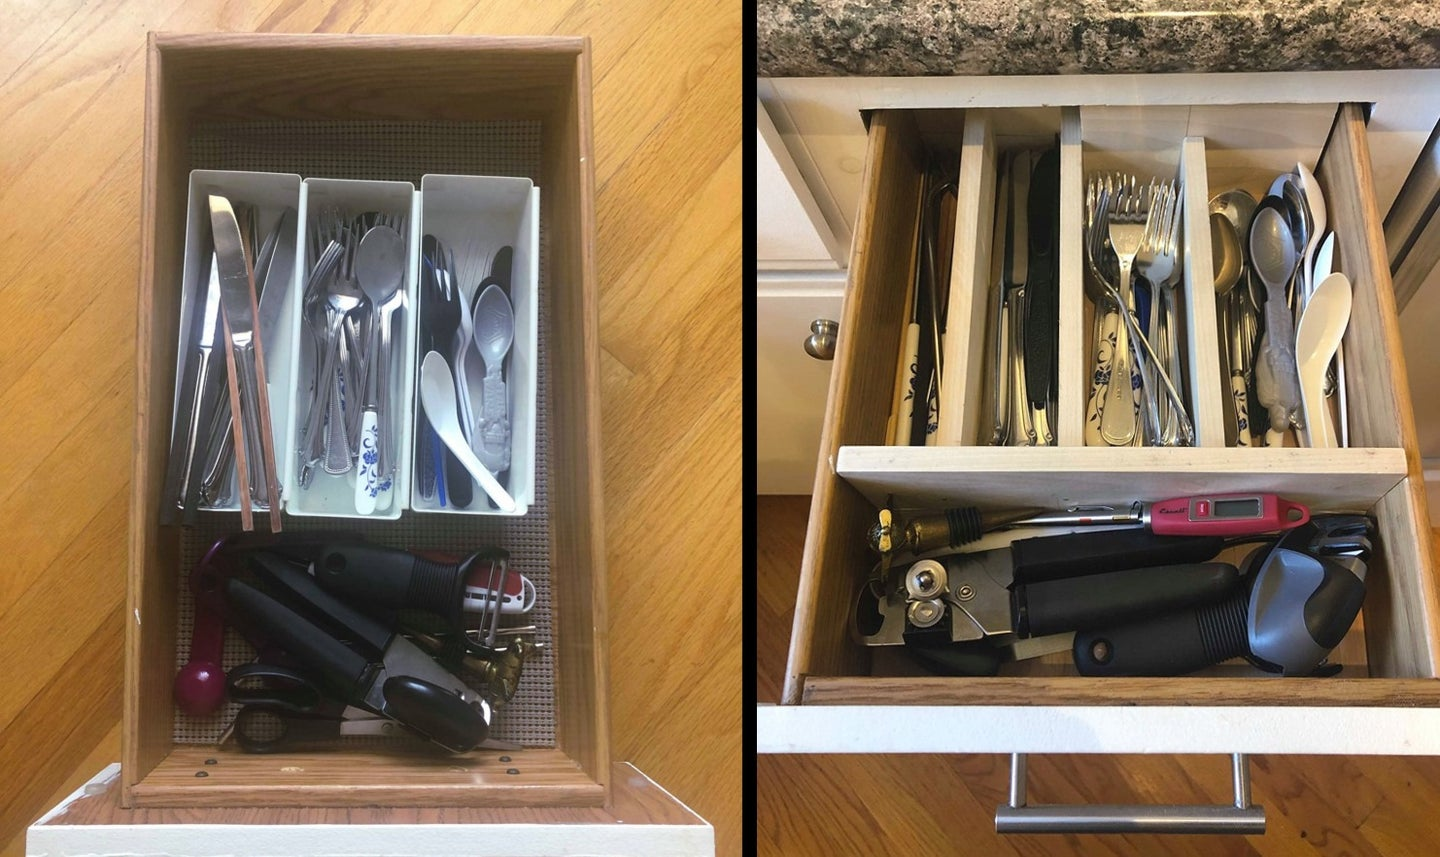 a before and after photo of a messy kitchen utensil drawer and a drawer organized with a homemade DIY drawer organizer